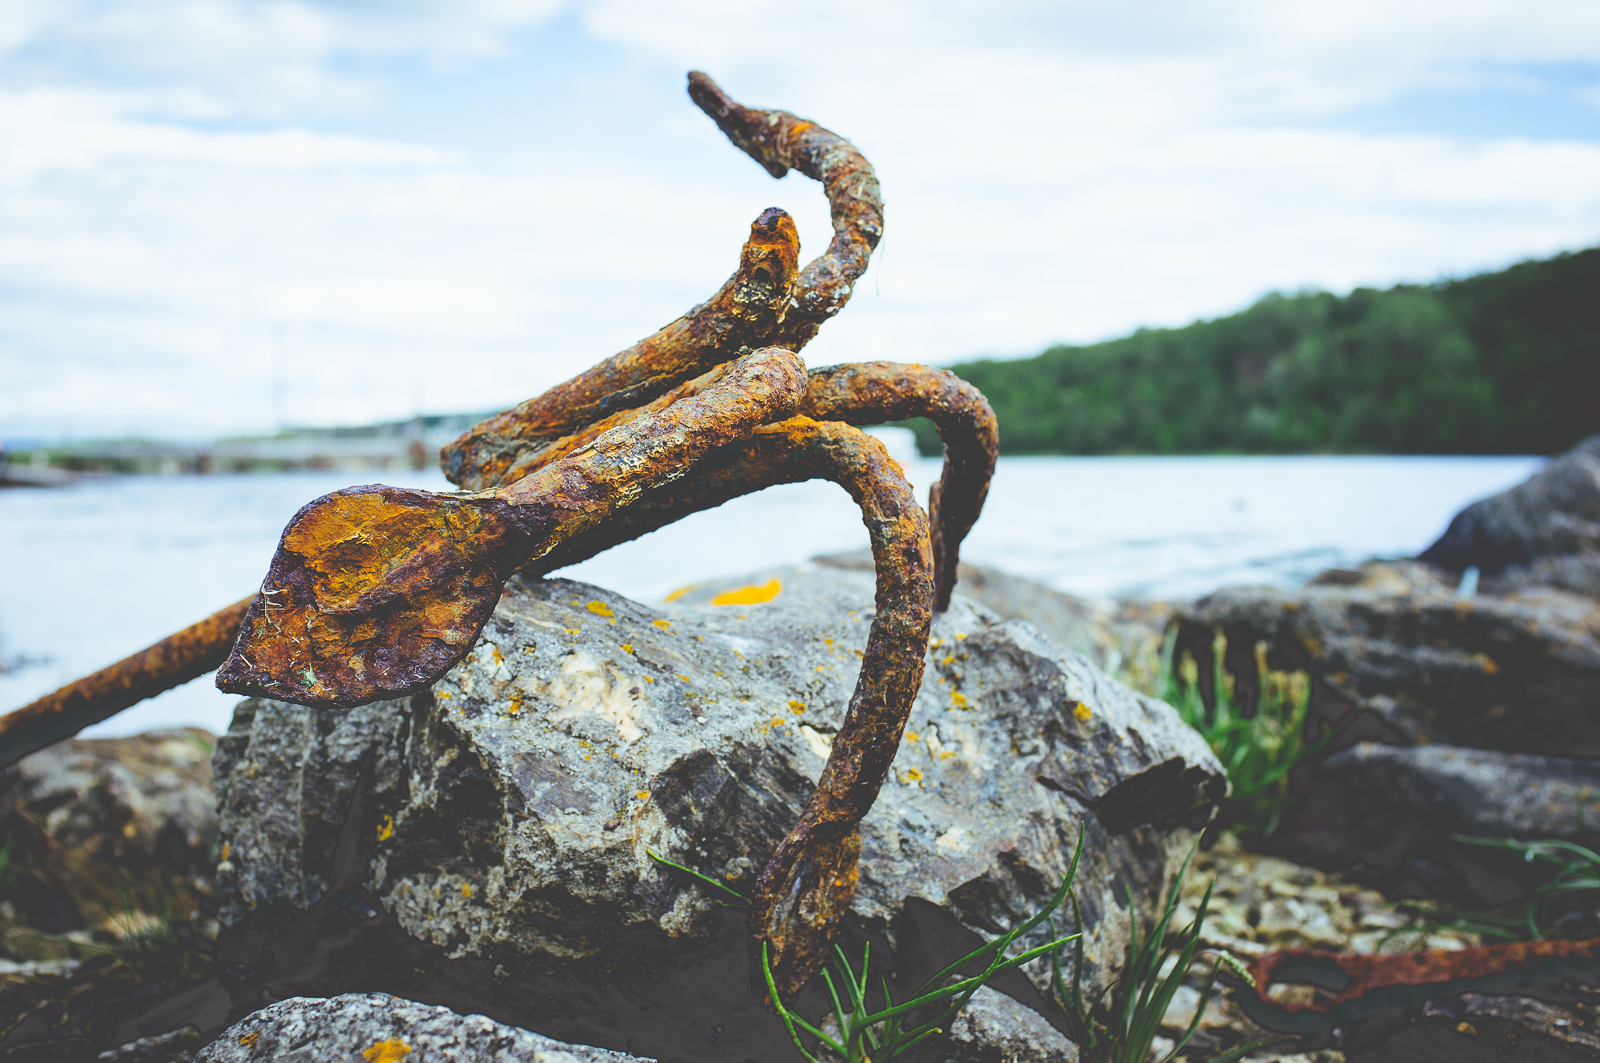 The rusty old anchor